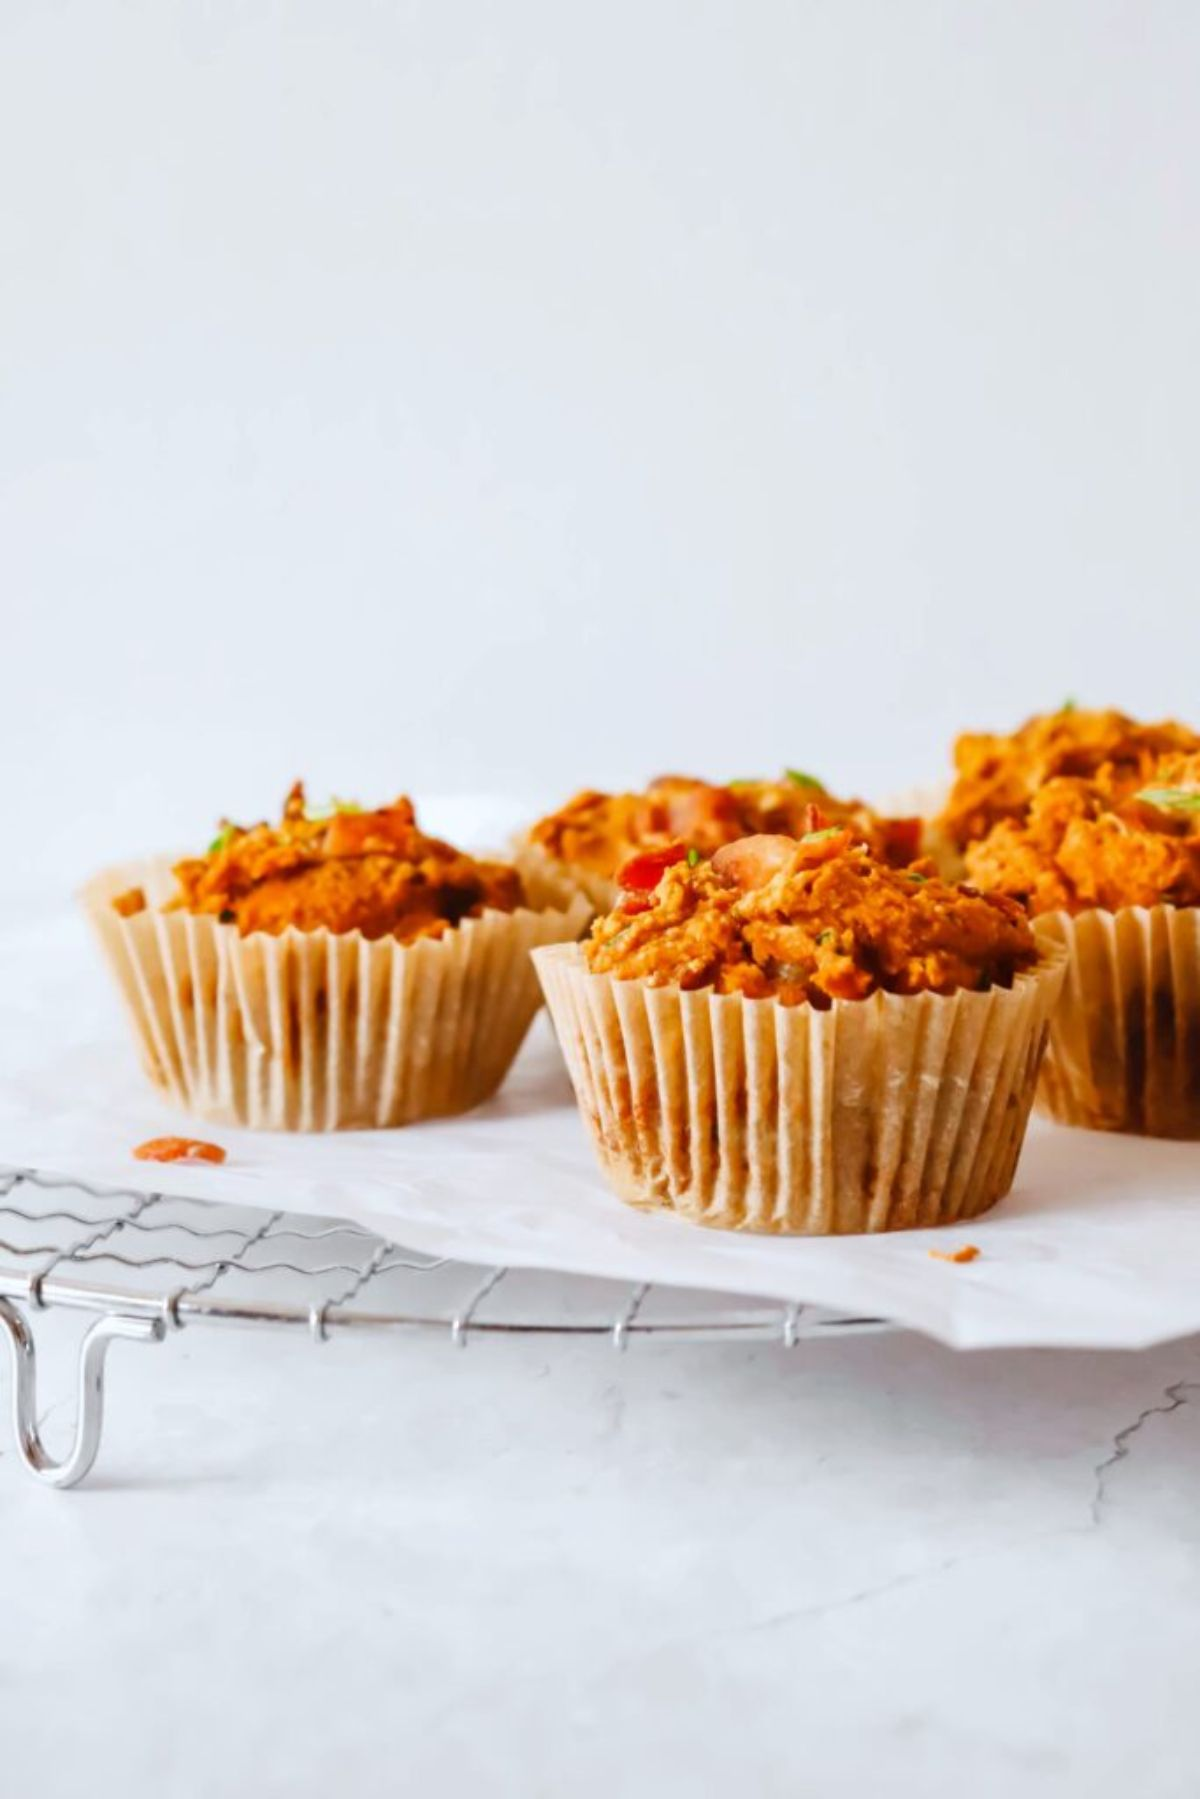 a cooling tray laden with sweet potato bacon and chive muffins